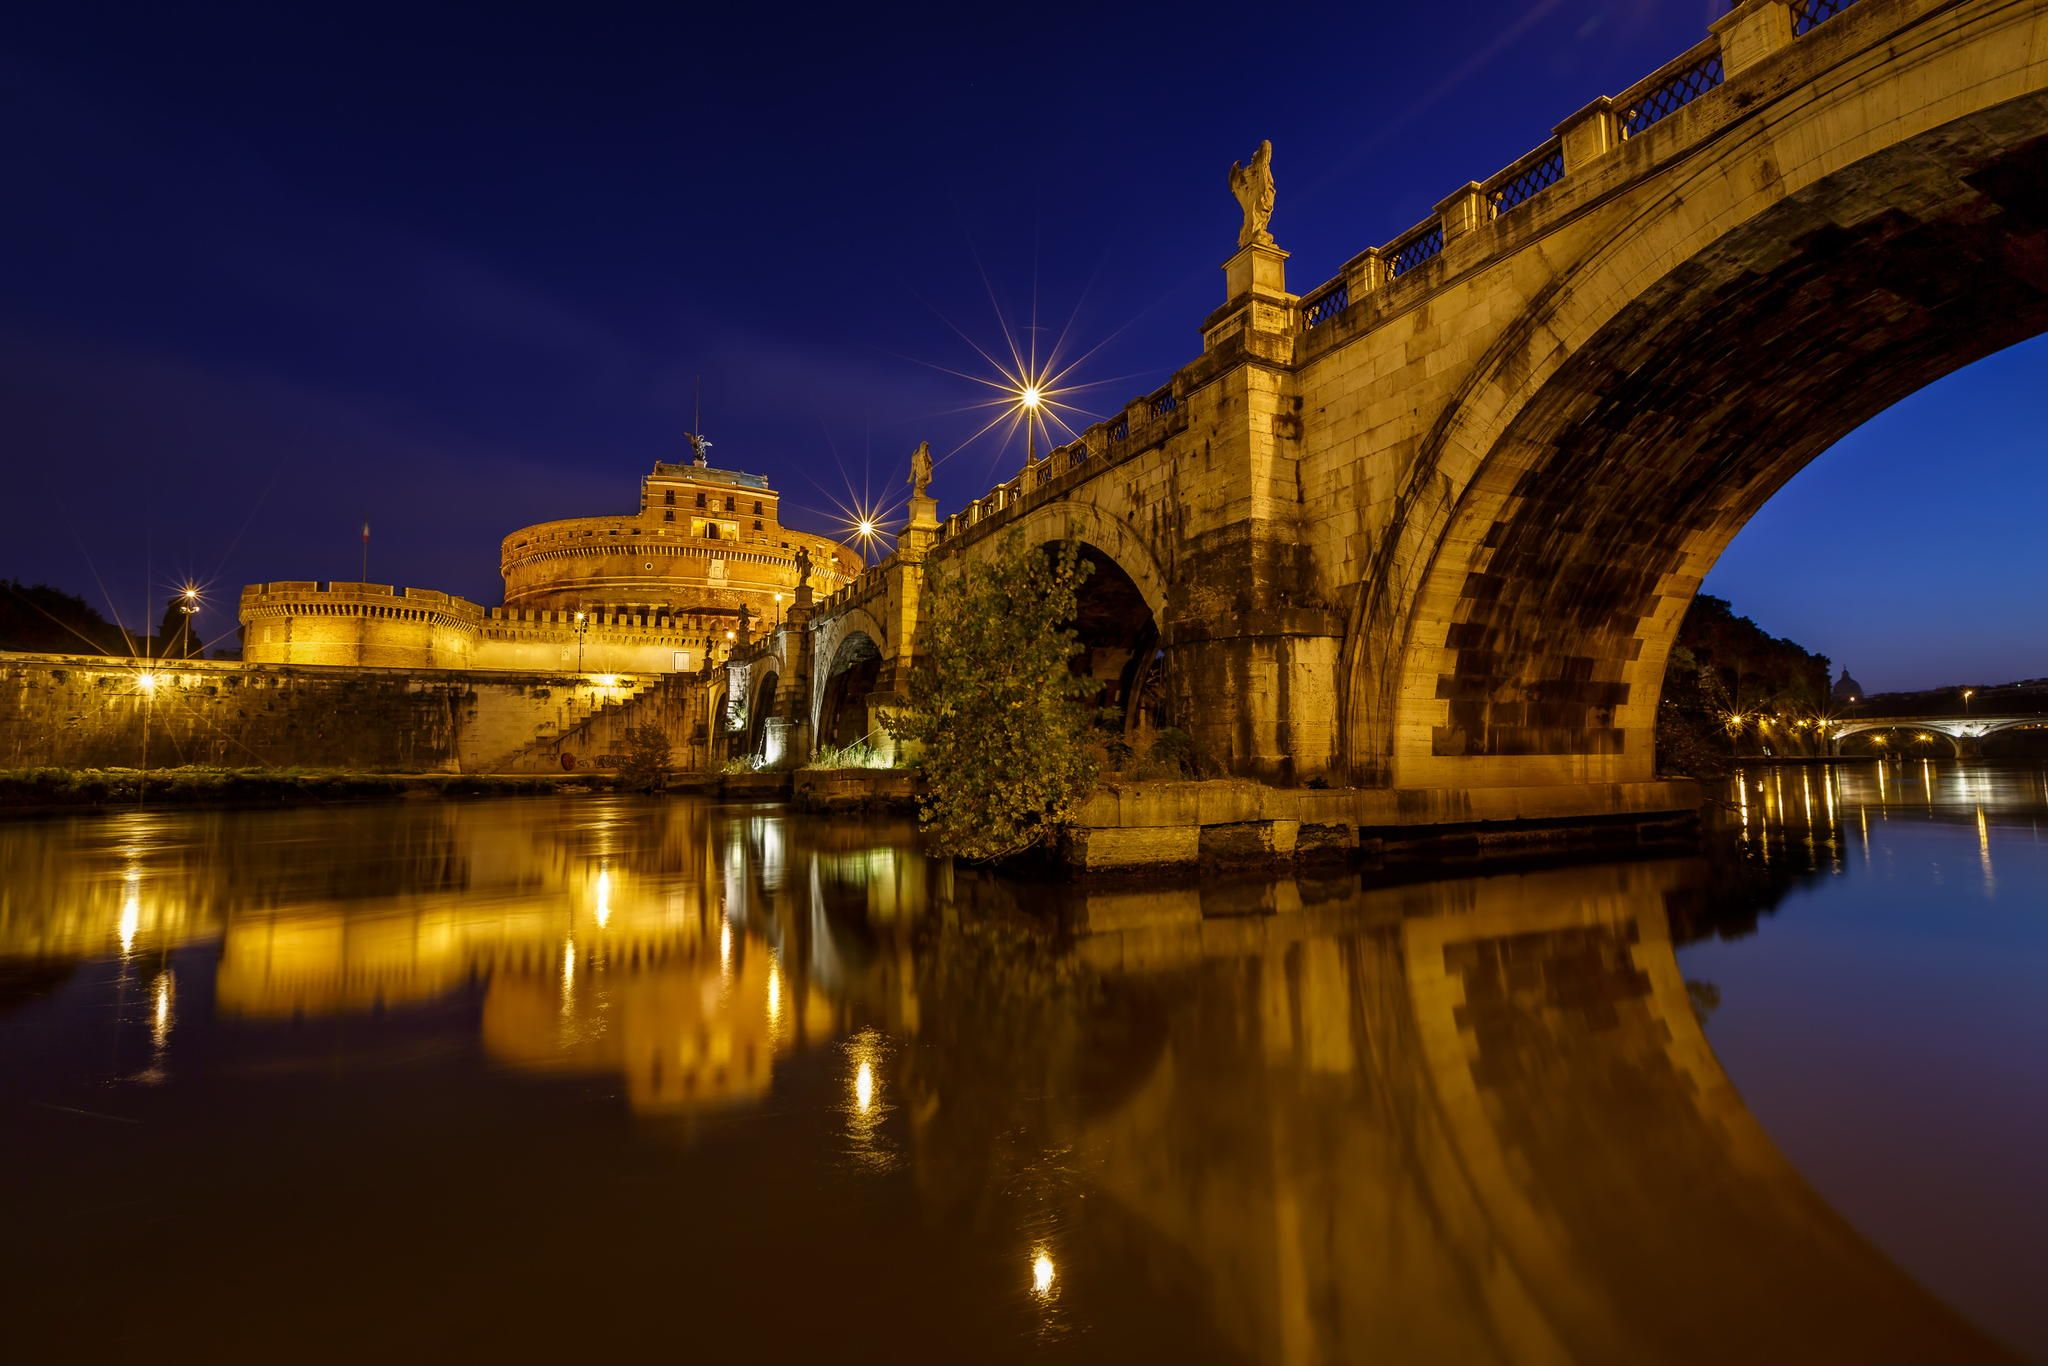 Saint Angel Fortress And Angel Bridge Over The Tiber River In Rome At Dawn | Italy | Photo By Andrey Omelyanchuk